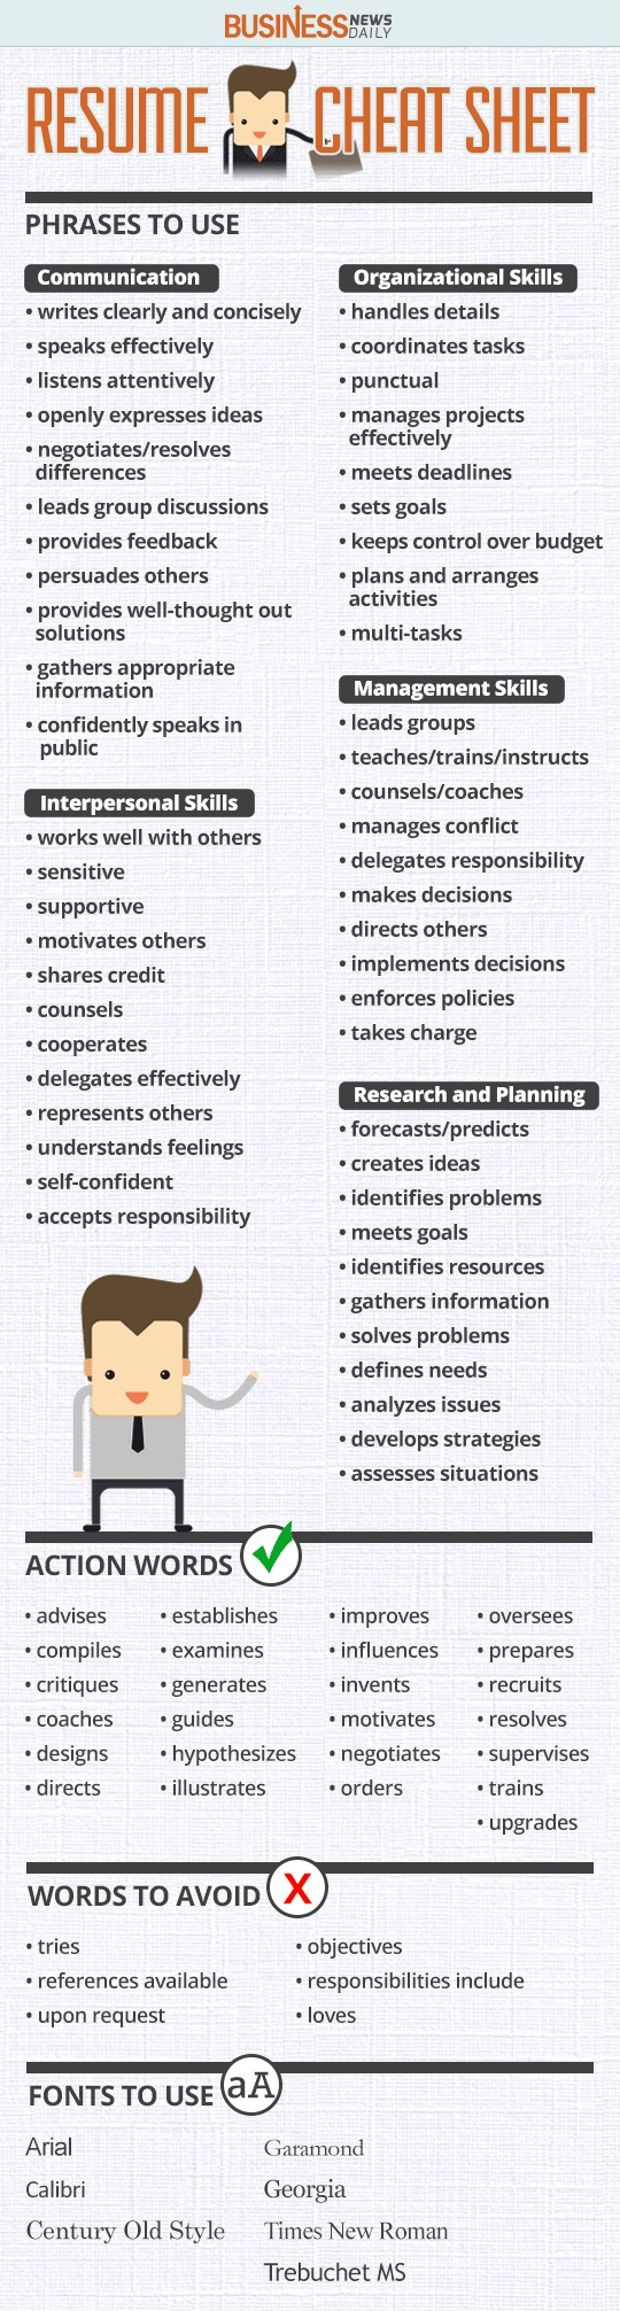 The Resume Cheat Sheet Your Career CanT Live Without Infographic